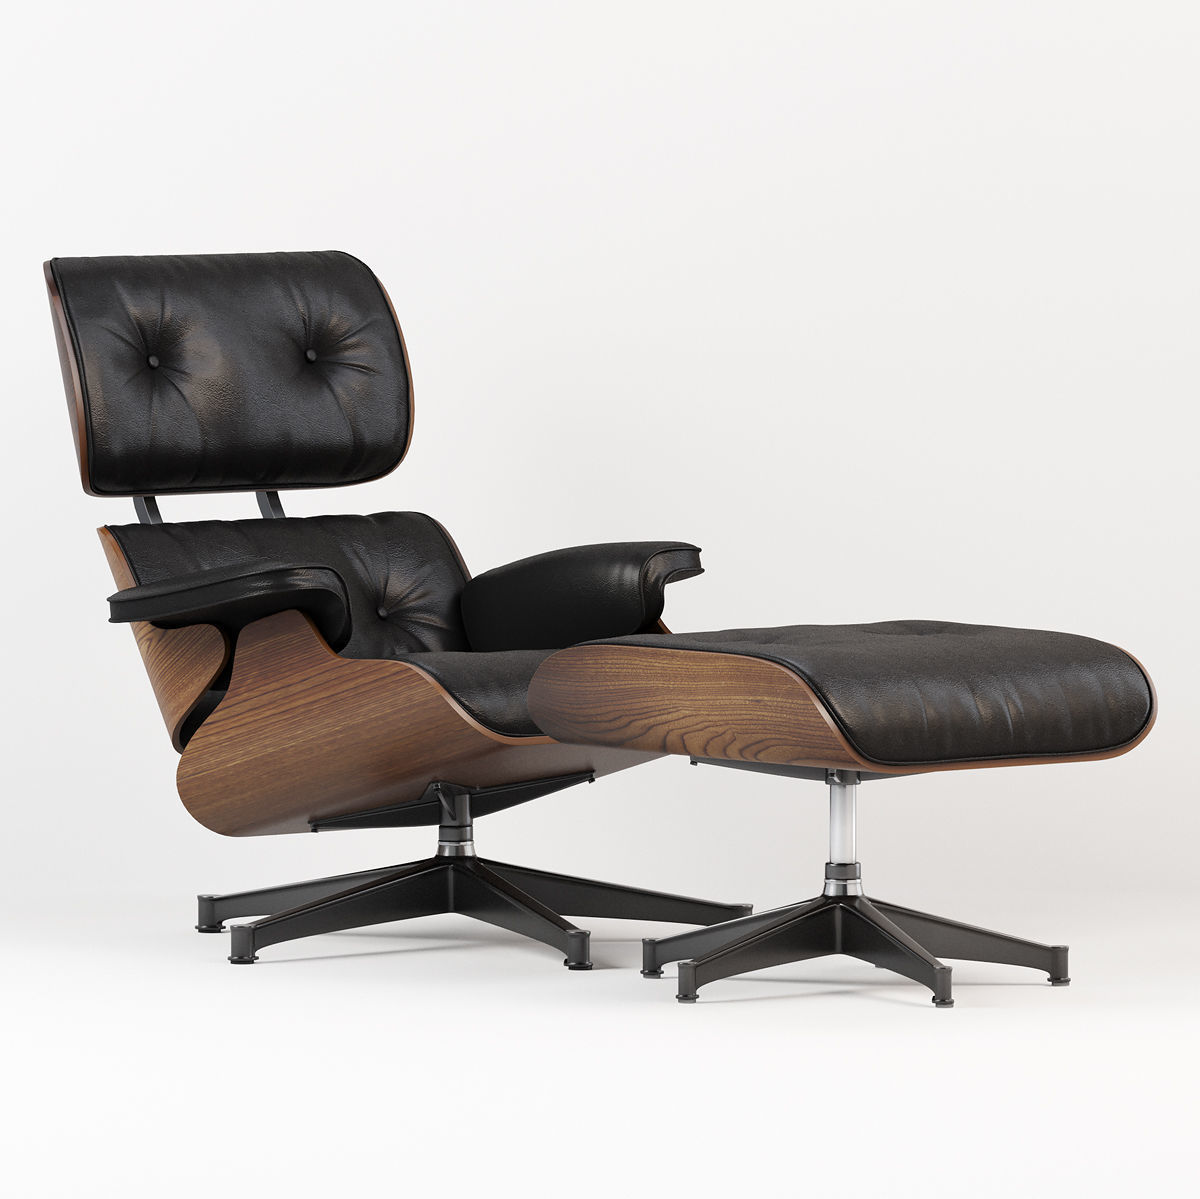 Astounding Eames Style Lounge Chair And Ottoman 3D Model Beatyapartments Chair Design Images Beatyapartmentscom